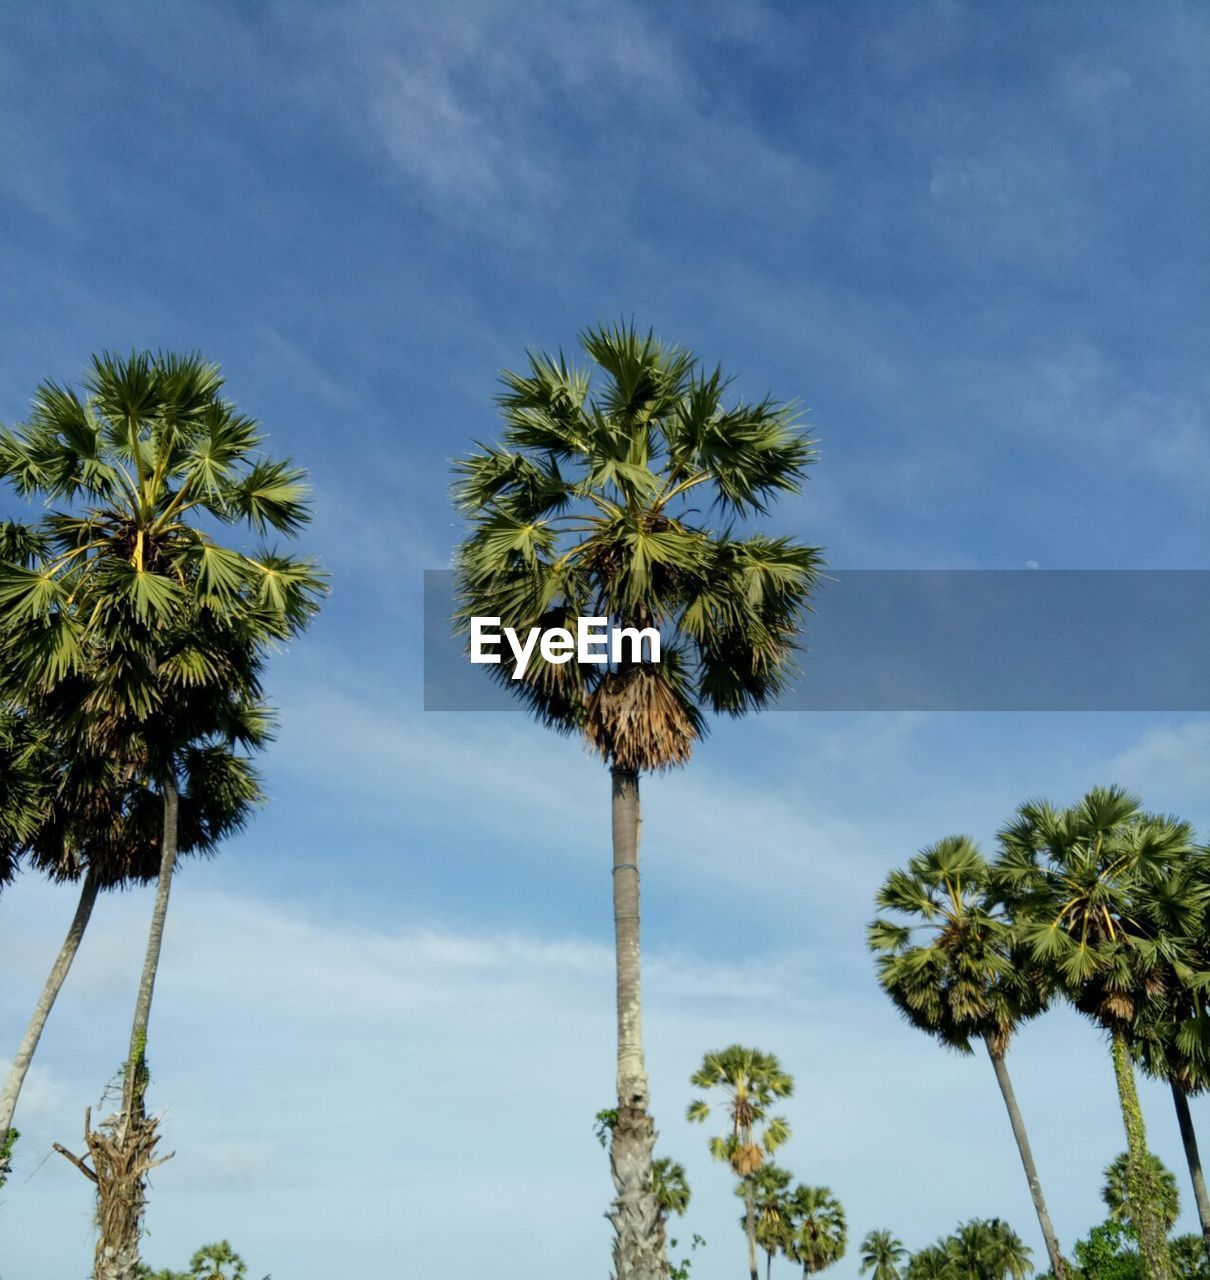 palm tree, plant, sky, tropical climate, tree, growth, low angle view, cloud - sky, nature, trunk, tree trunk, beauty in nature, tranquility, no people, tall - high, coconut palm tree, day, tranquil scene, tropical tree, outdoors, palm leaf, treetop